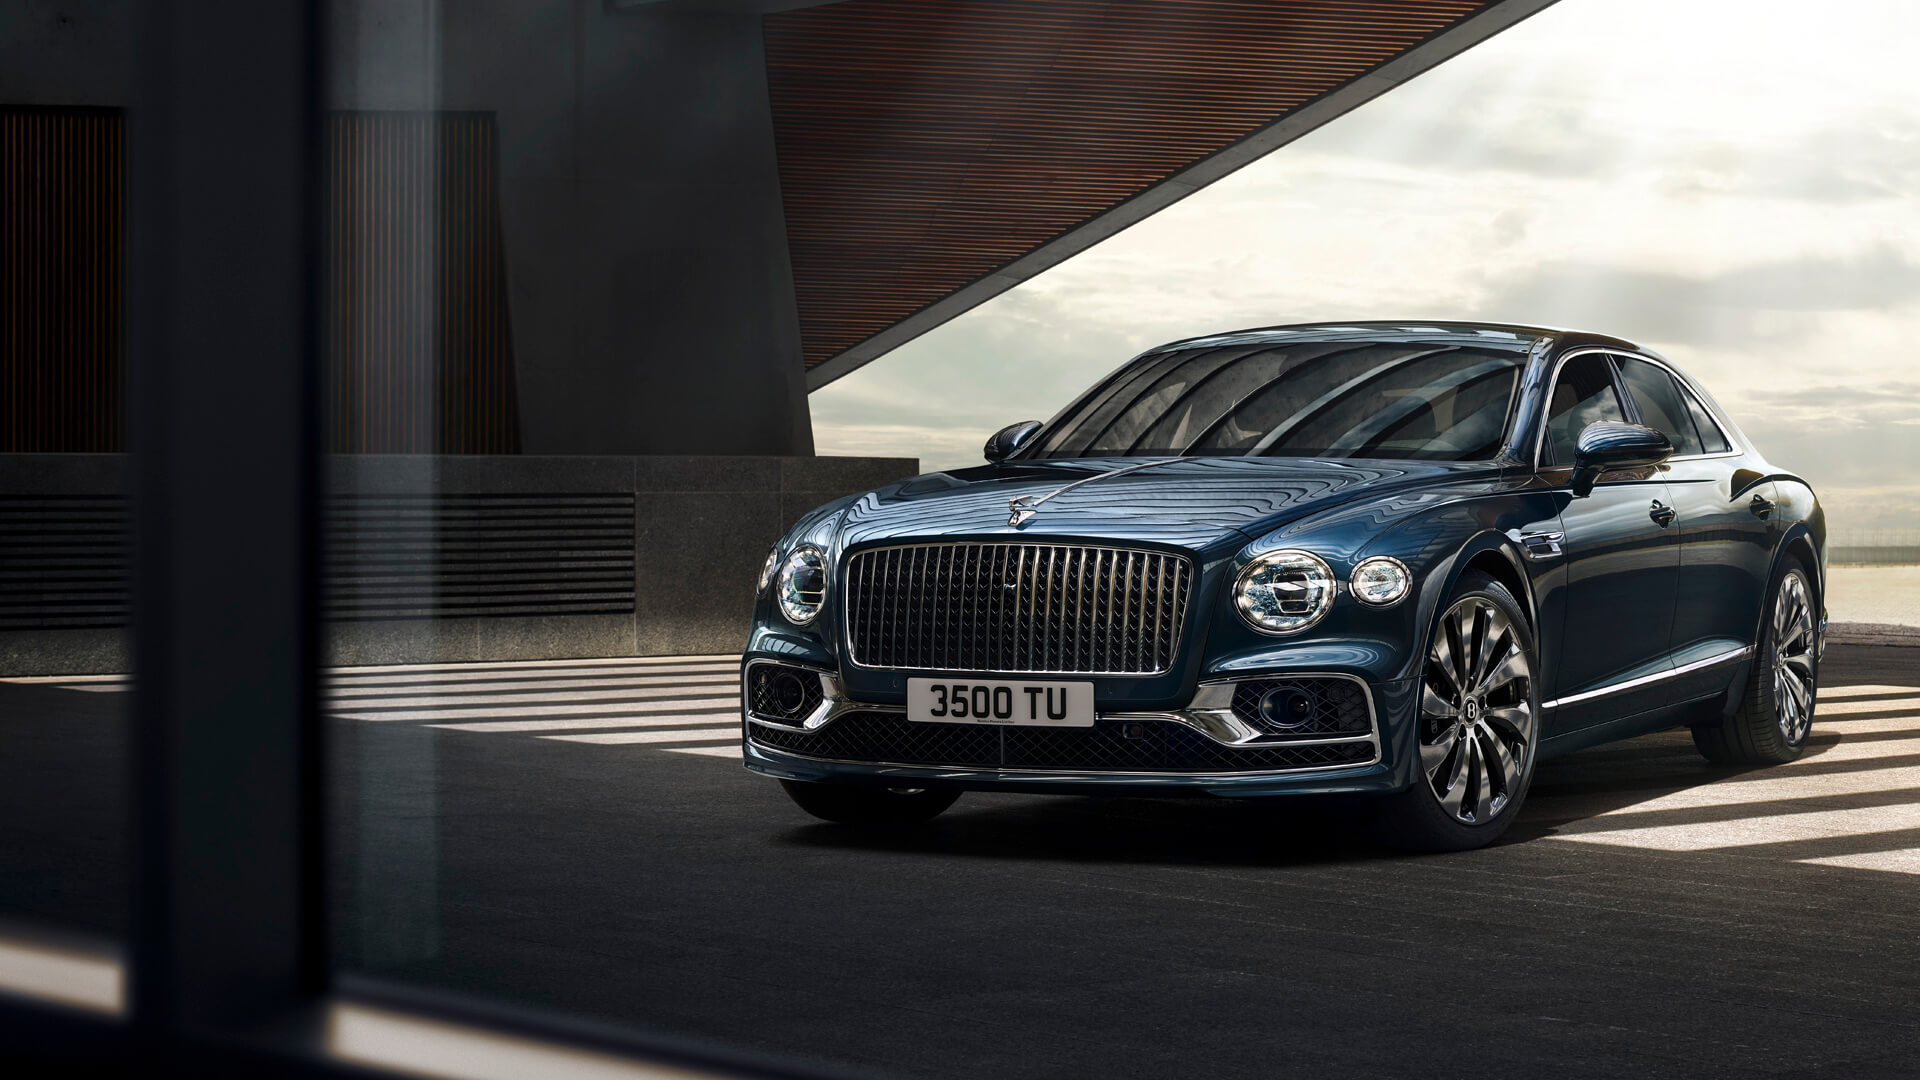 THE NEW FLYING SPUR TOUR